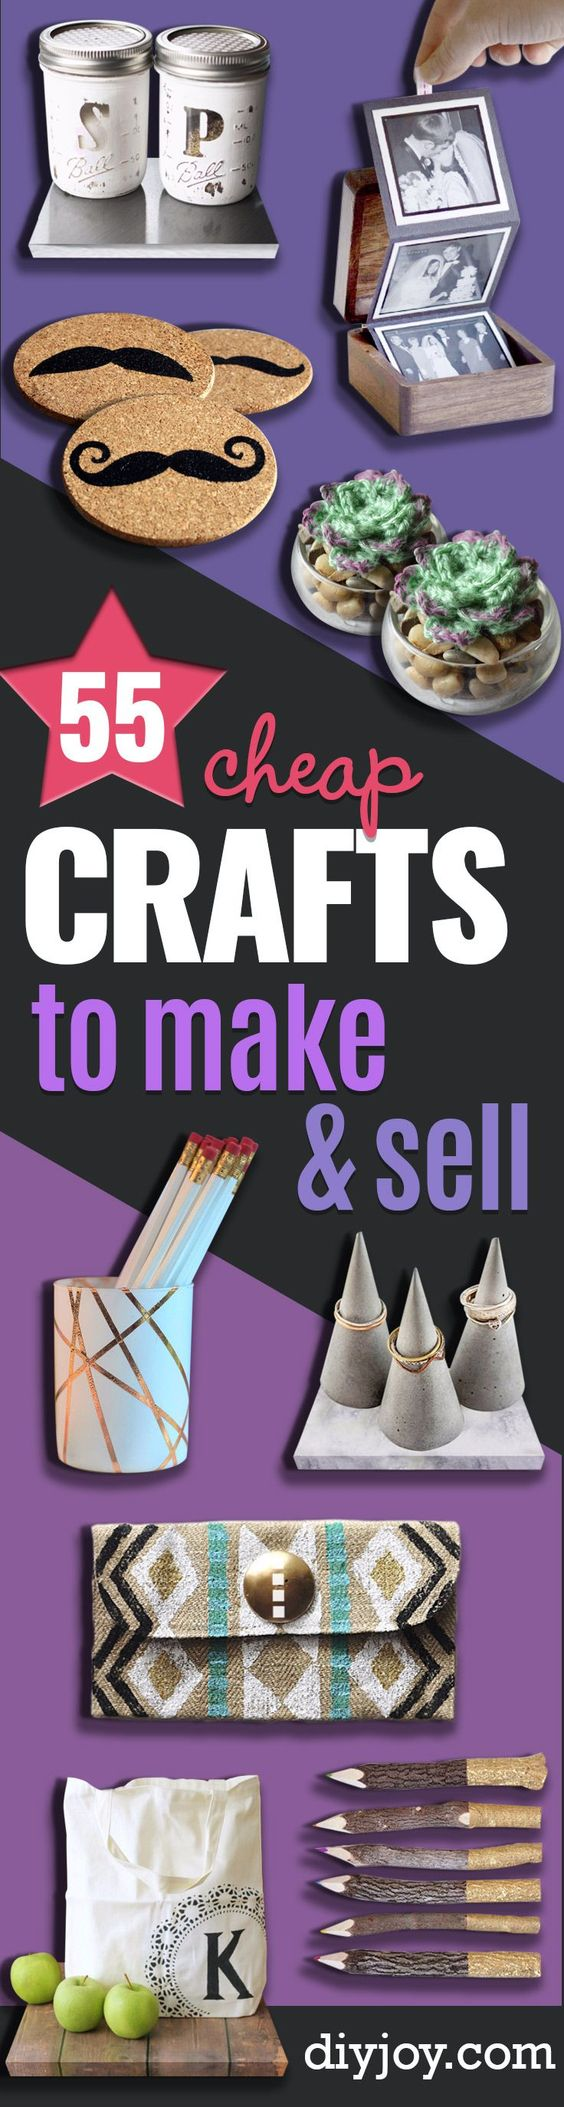 craft ideas to sell online crafts to make make and sell and diy craft projects on 6296